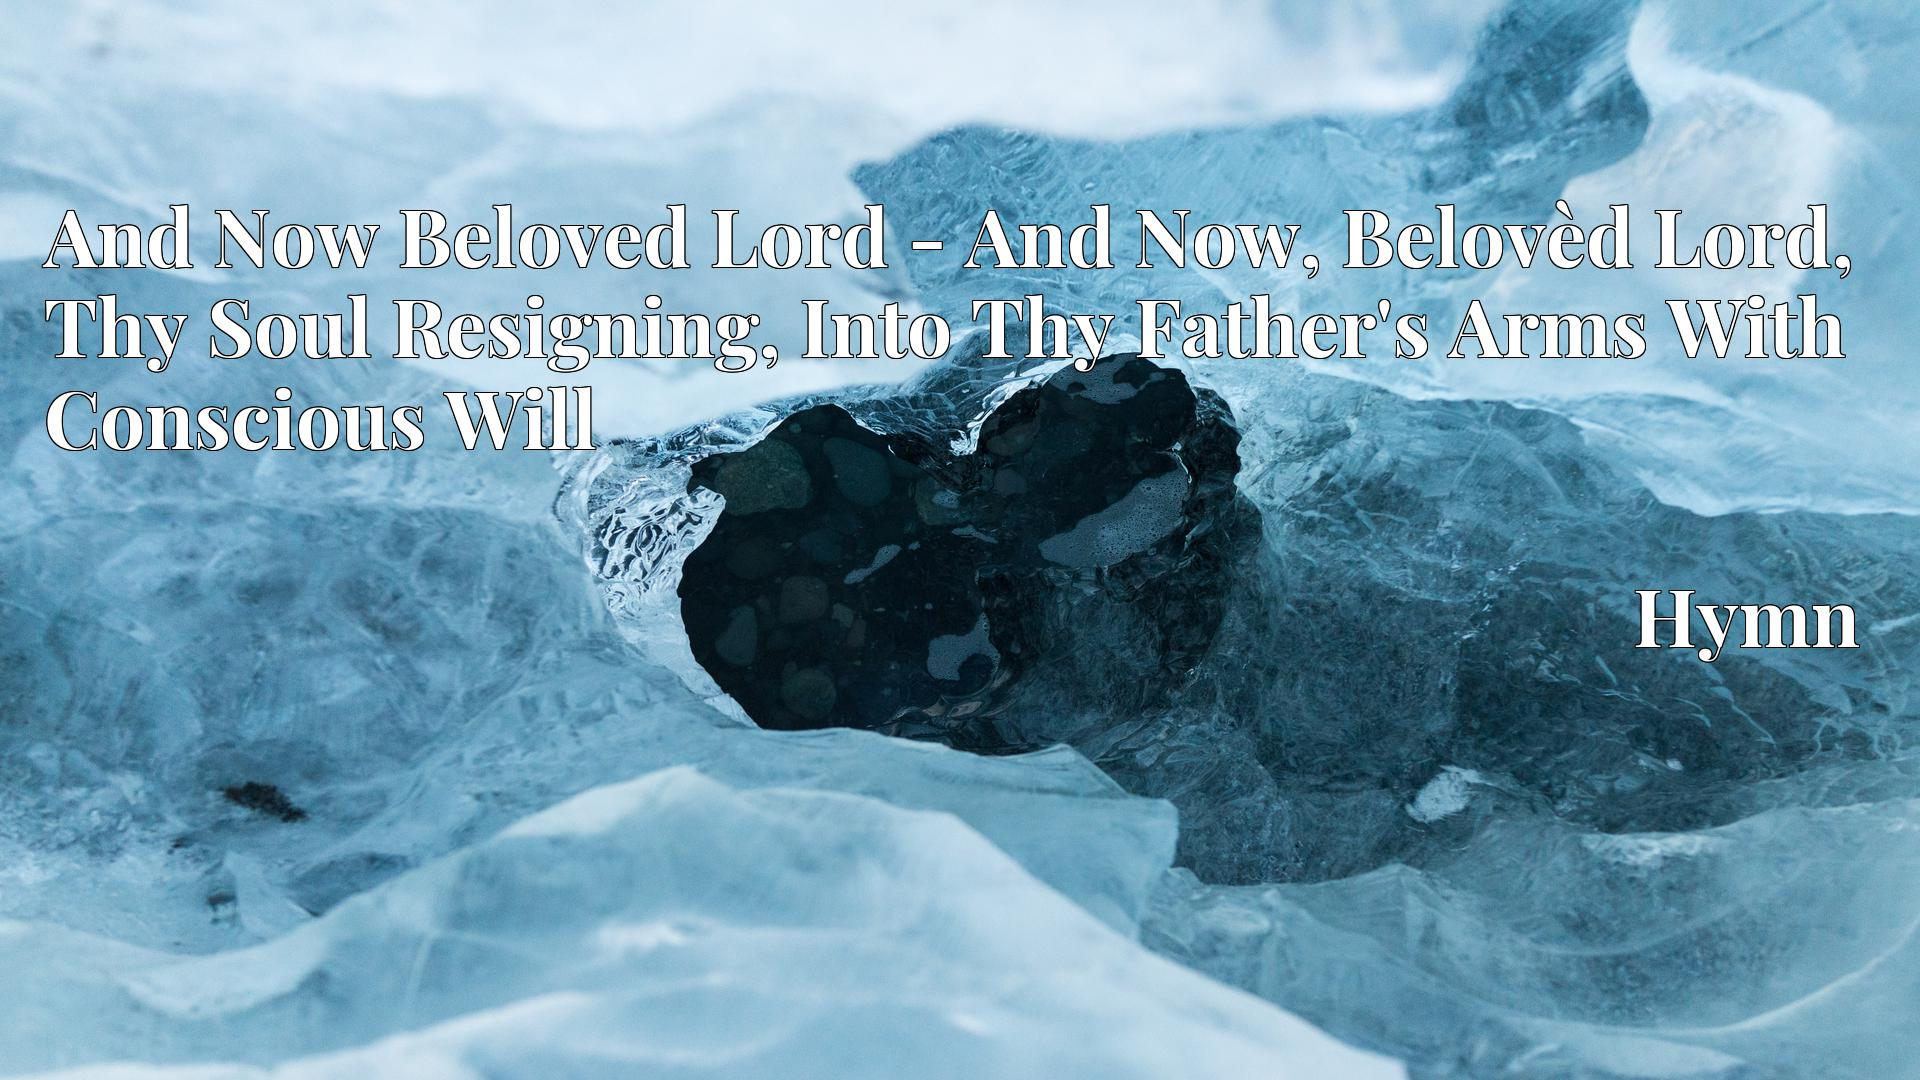 And Now Beloved Lord - And Now, Belovèd Lord, Thy Soul Resigning, Into Thy Father's Arms With Conscious Will - Hymn